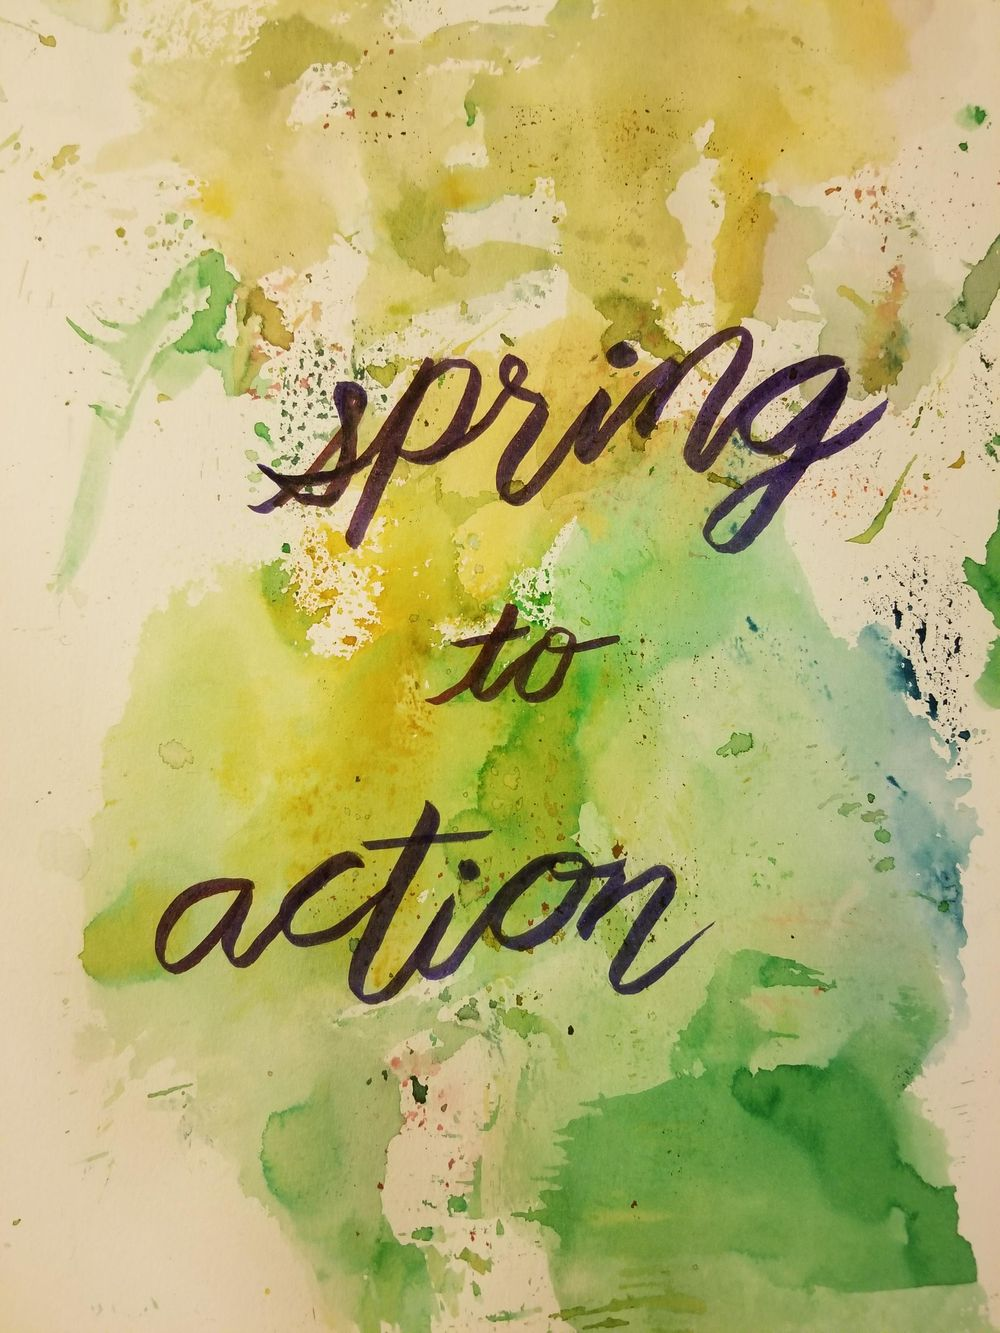 spring to action - image 1 - student project